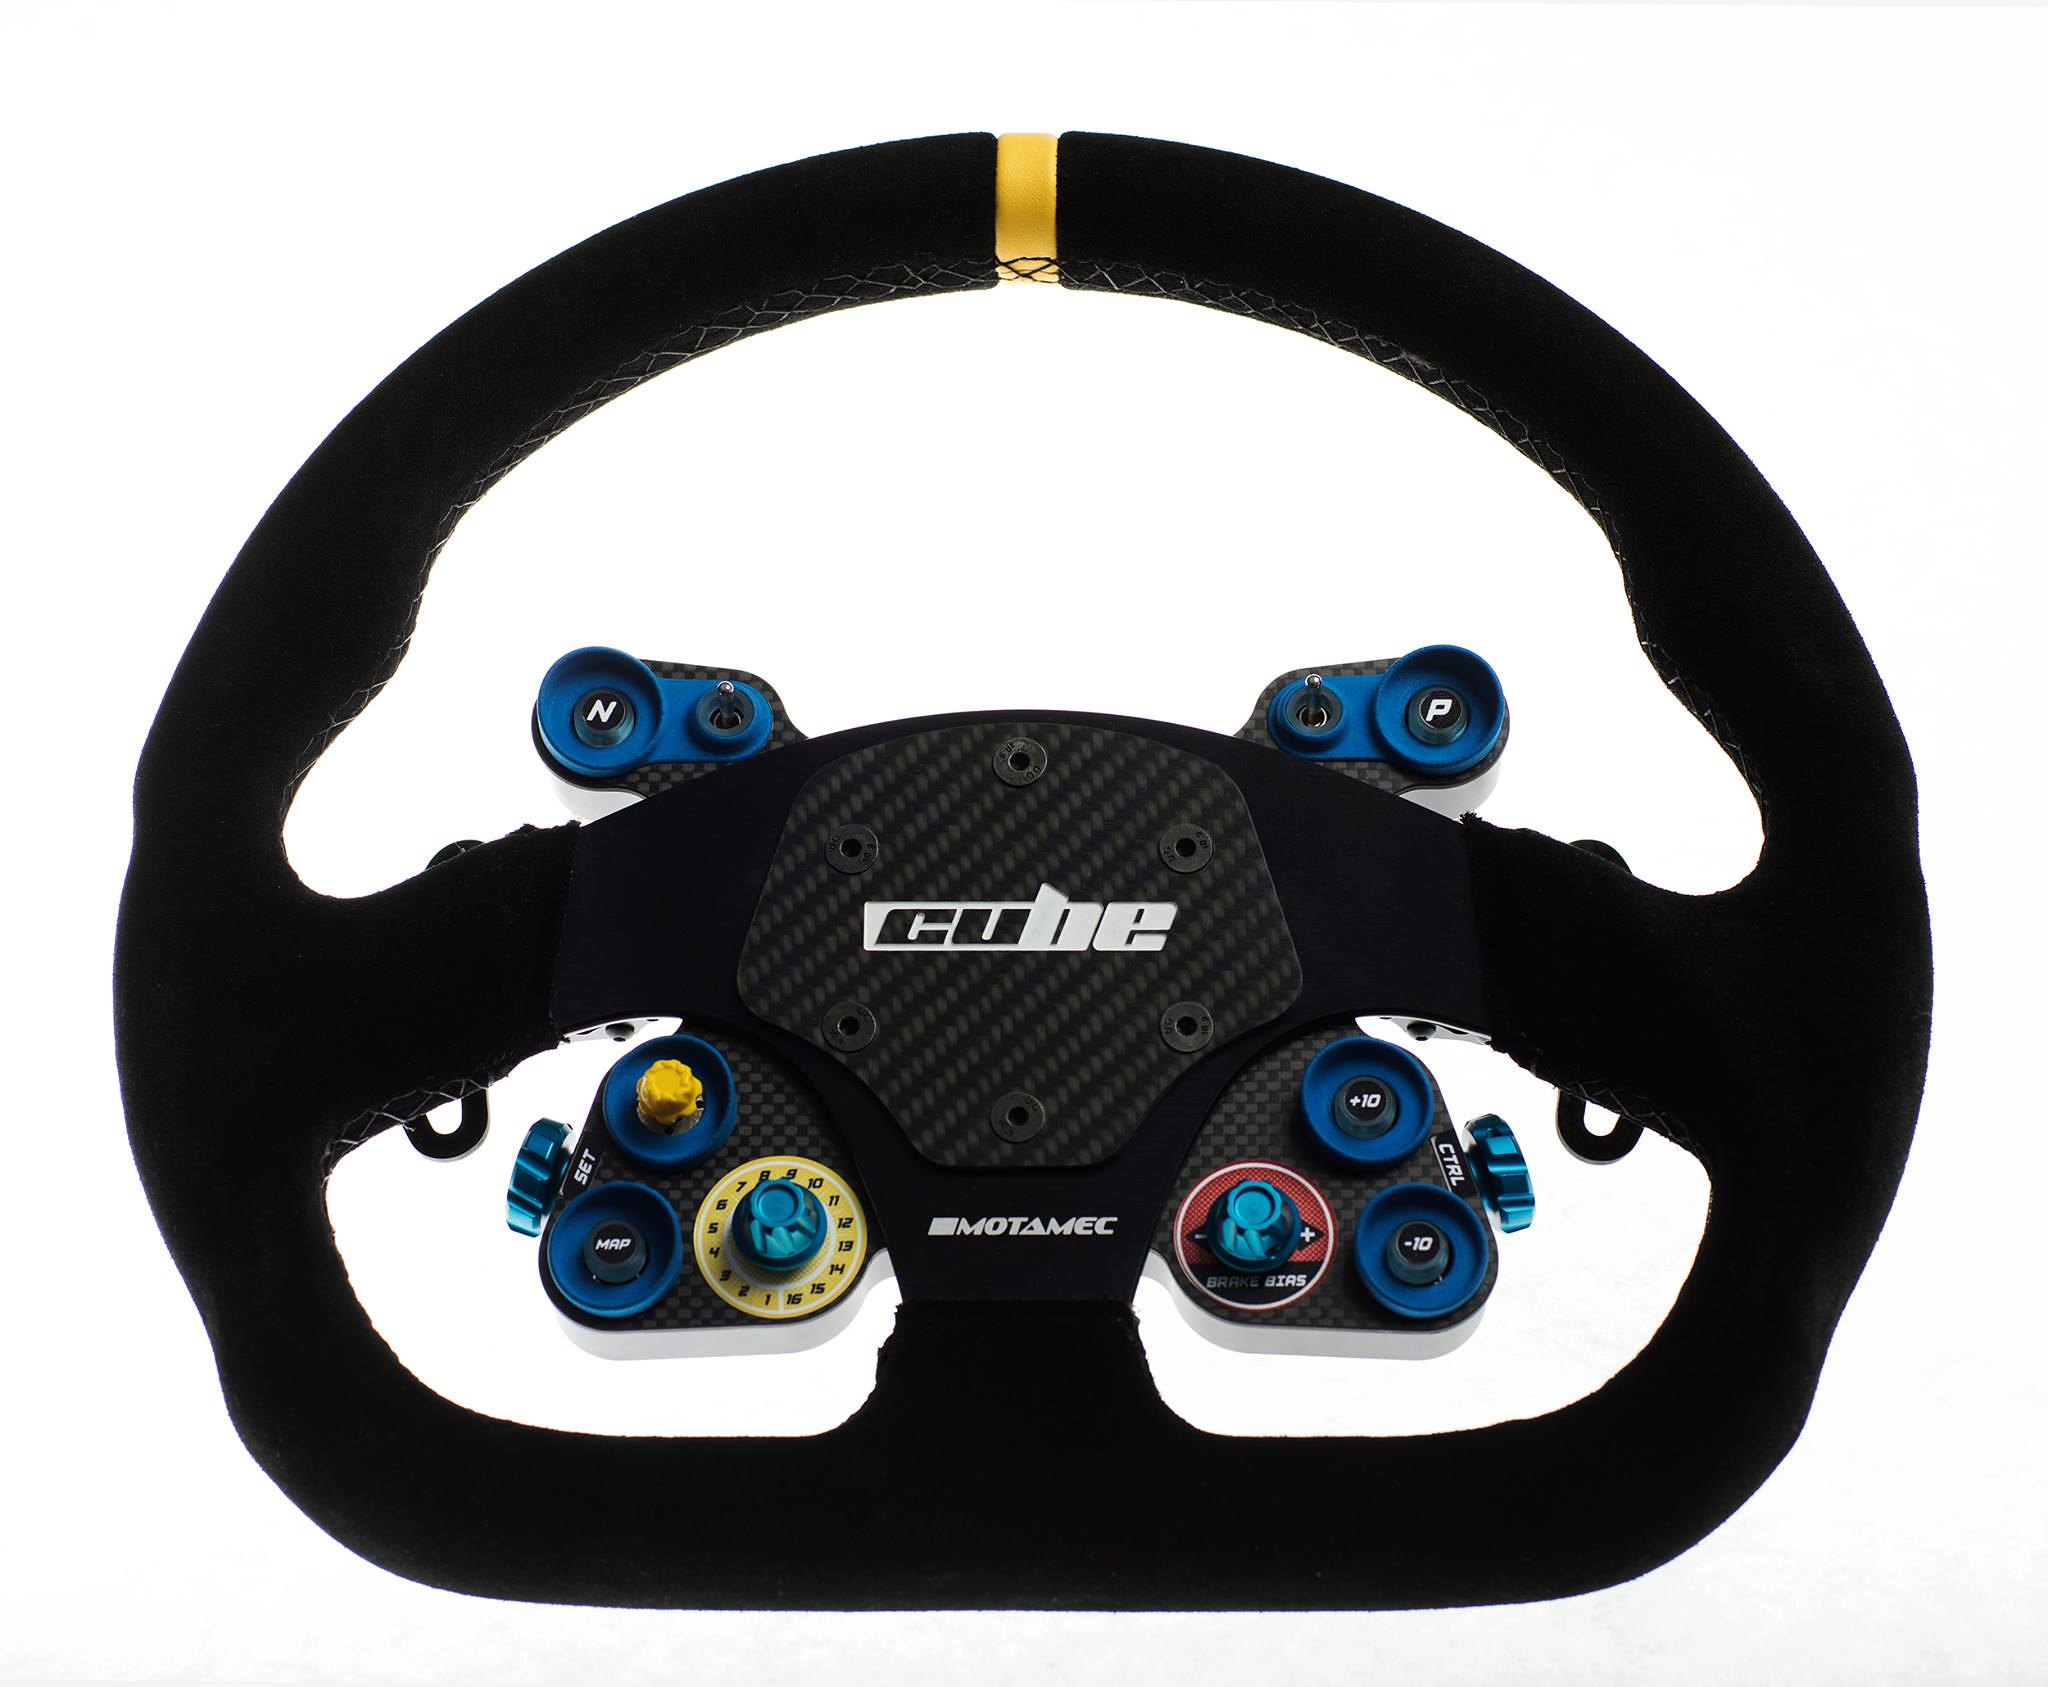 Cube Touring steering wheel 4